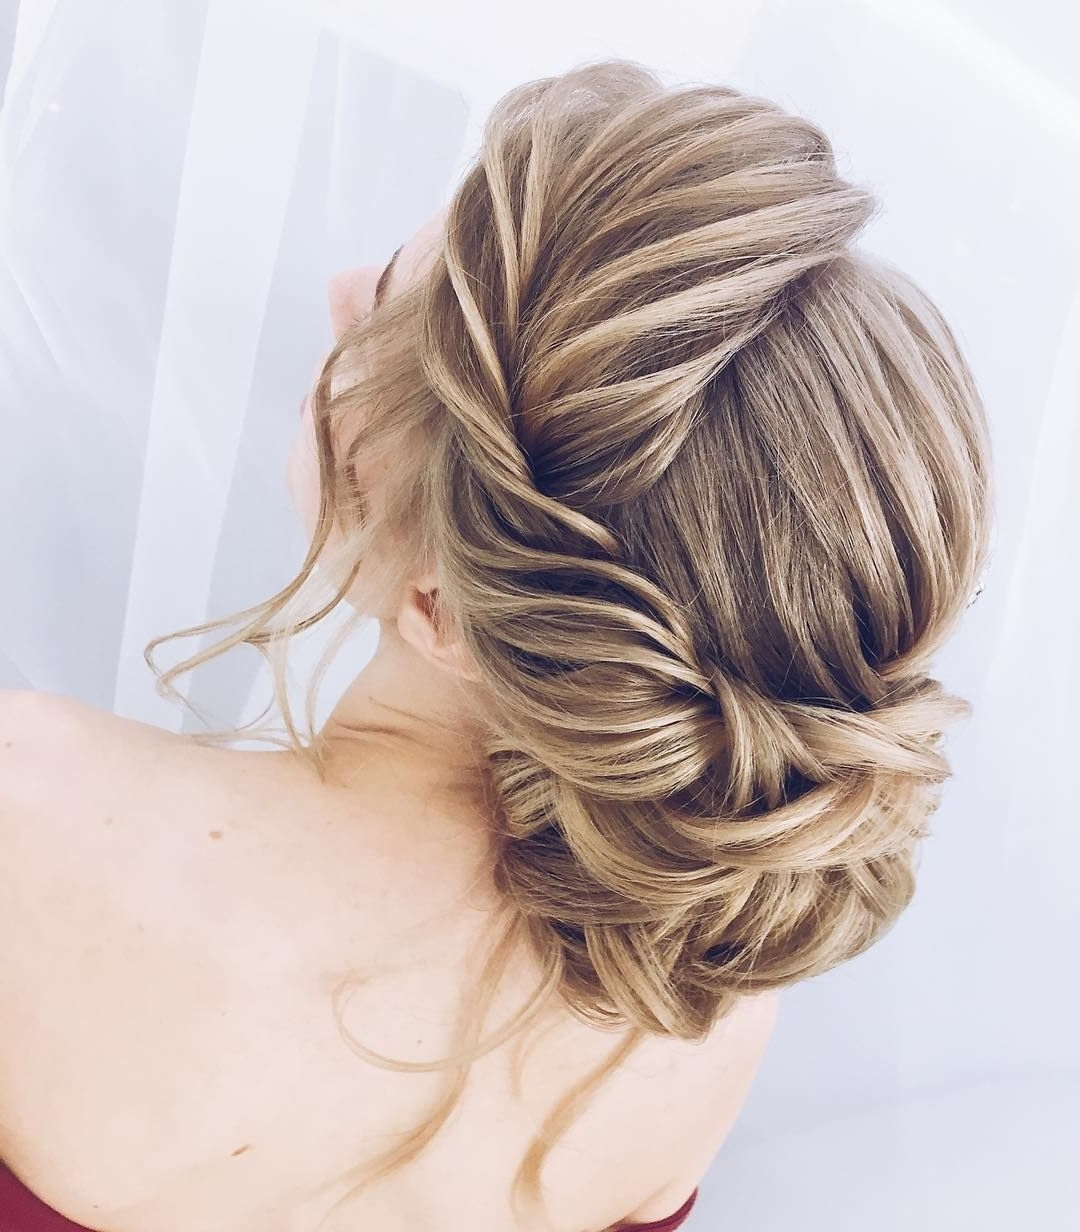 Most Recent Hair Up Wedding Hairstyles Inside 92 Drop Dead Gorgeous Wedding Hairstyles For Every Bride To Be (View 12 of 15)